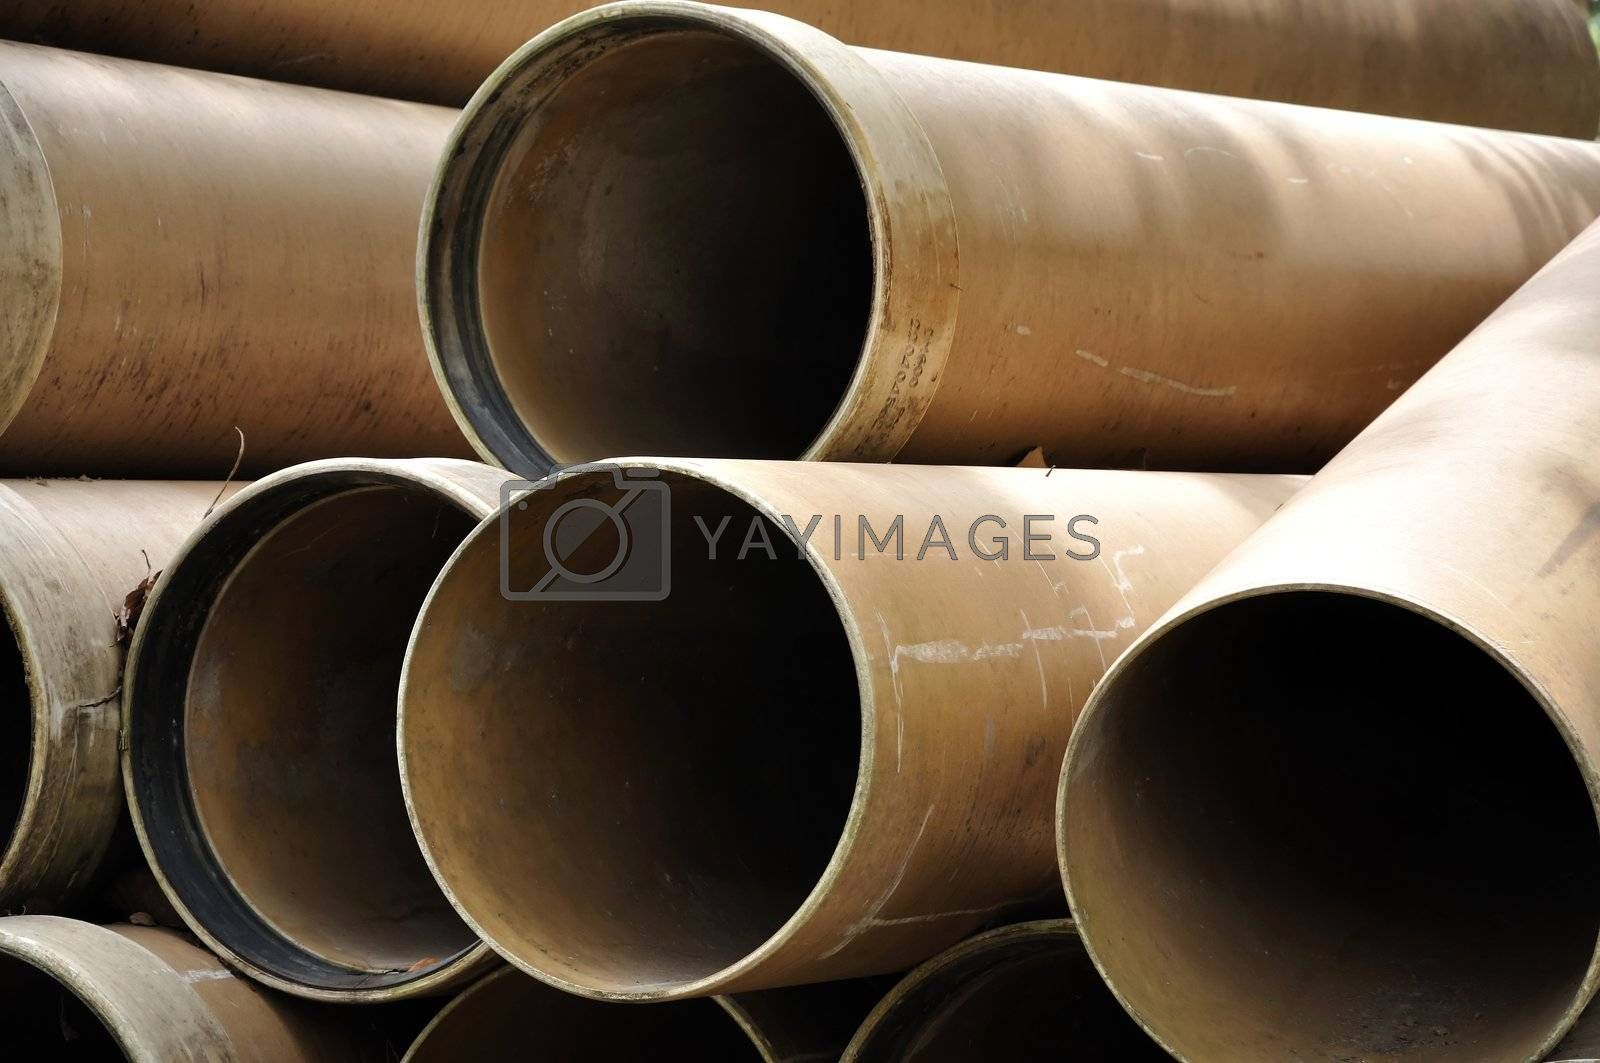 A tube, or tubing, is a long hollow cylinder used to convey fluids (liquids or gases).